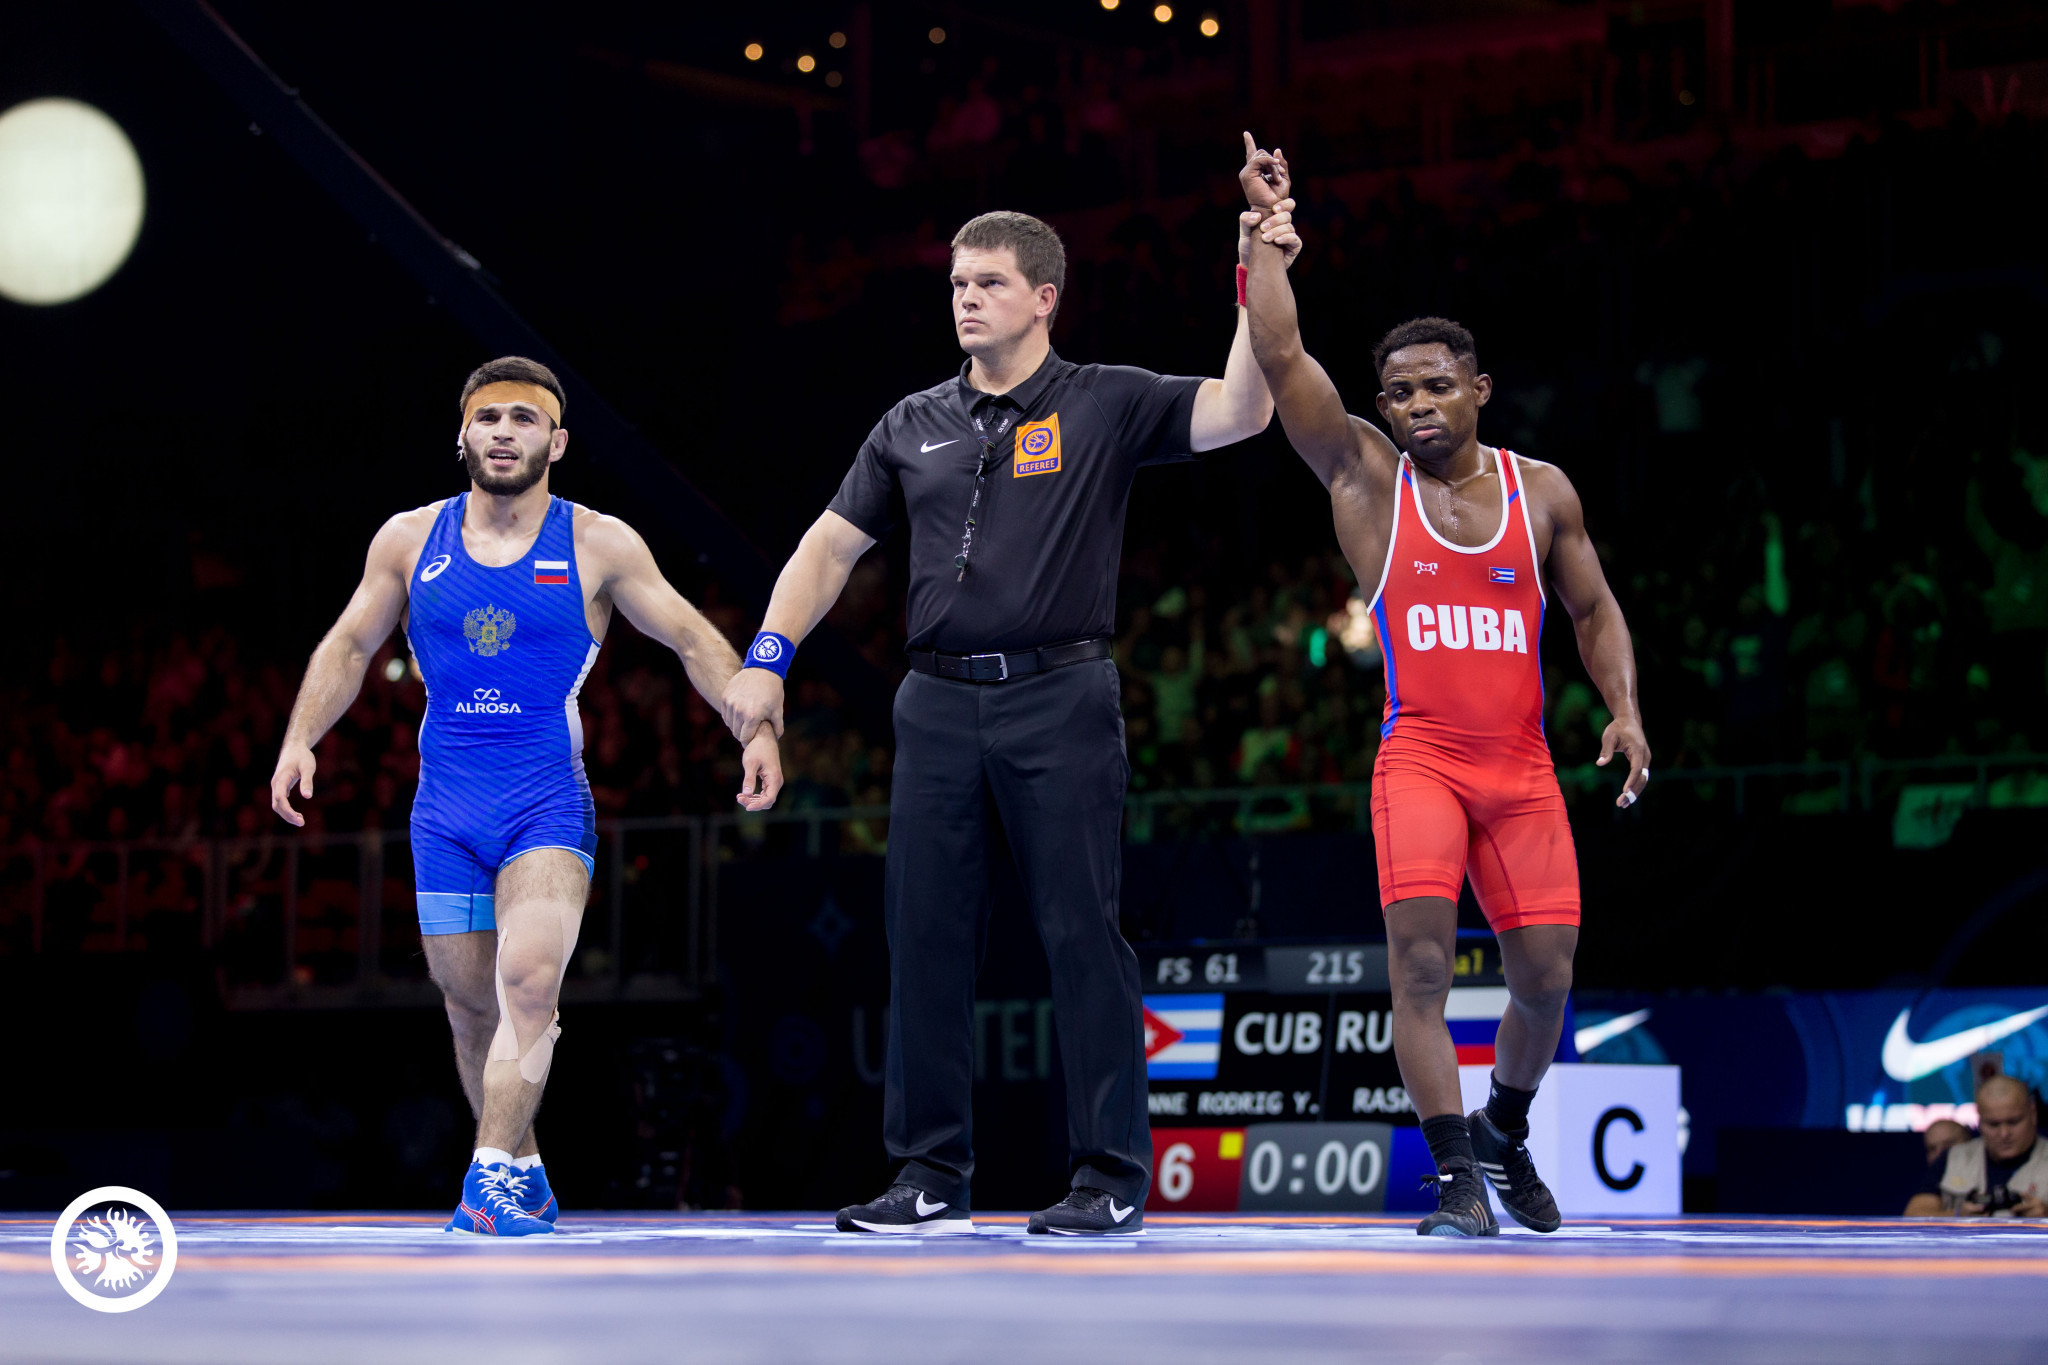 Cuba's Yowlys Bonne Rodriguez won the first gold of the 2018 World Wrestling Championships amid choatic scenes as his opponent's coach was shown a red card for abusing the referee ©UWW